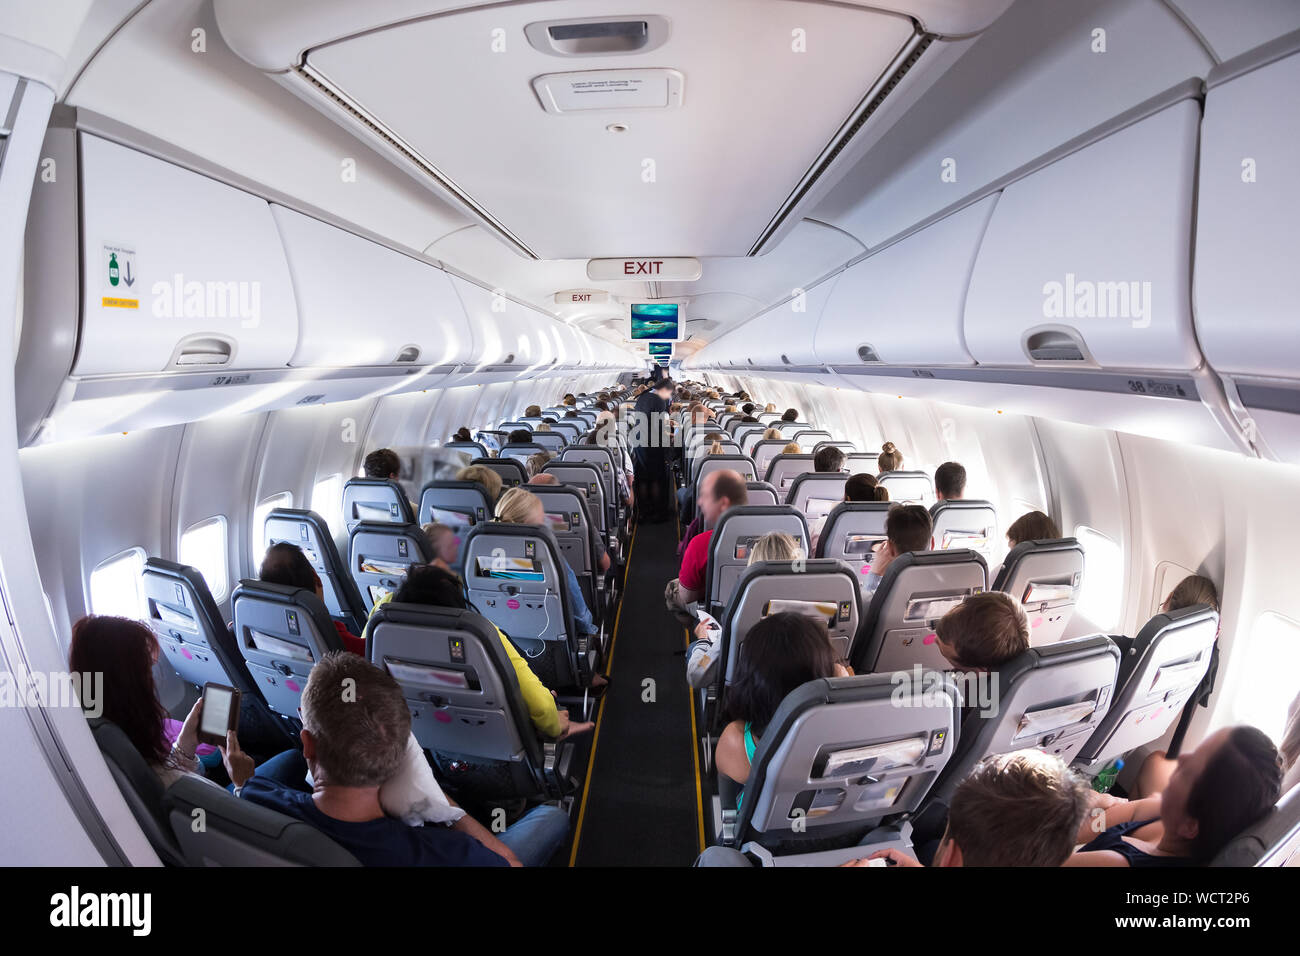 Airplane Inside View